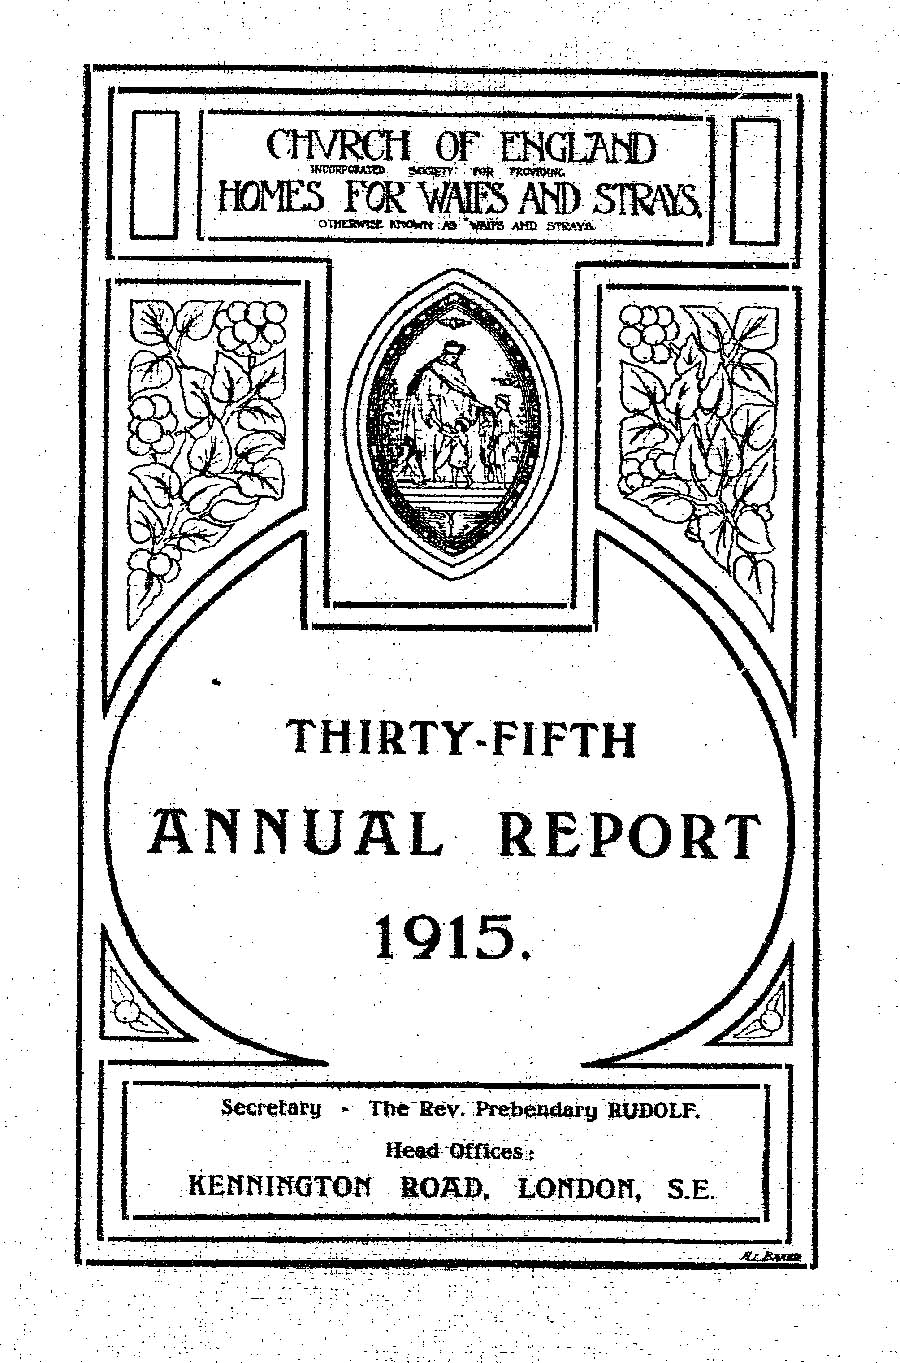 Annual Report 1915 - page 1